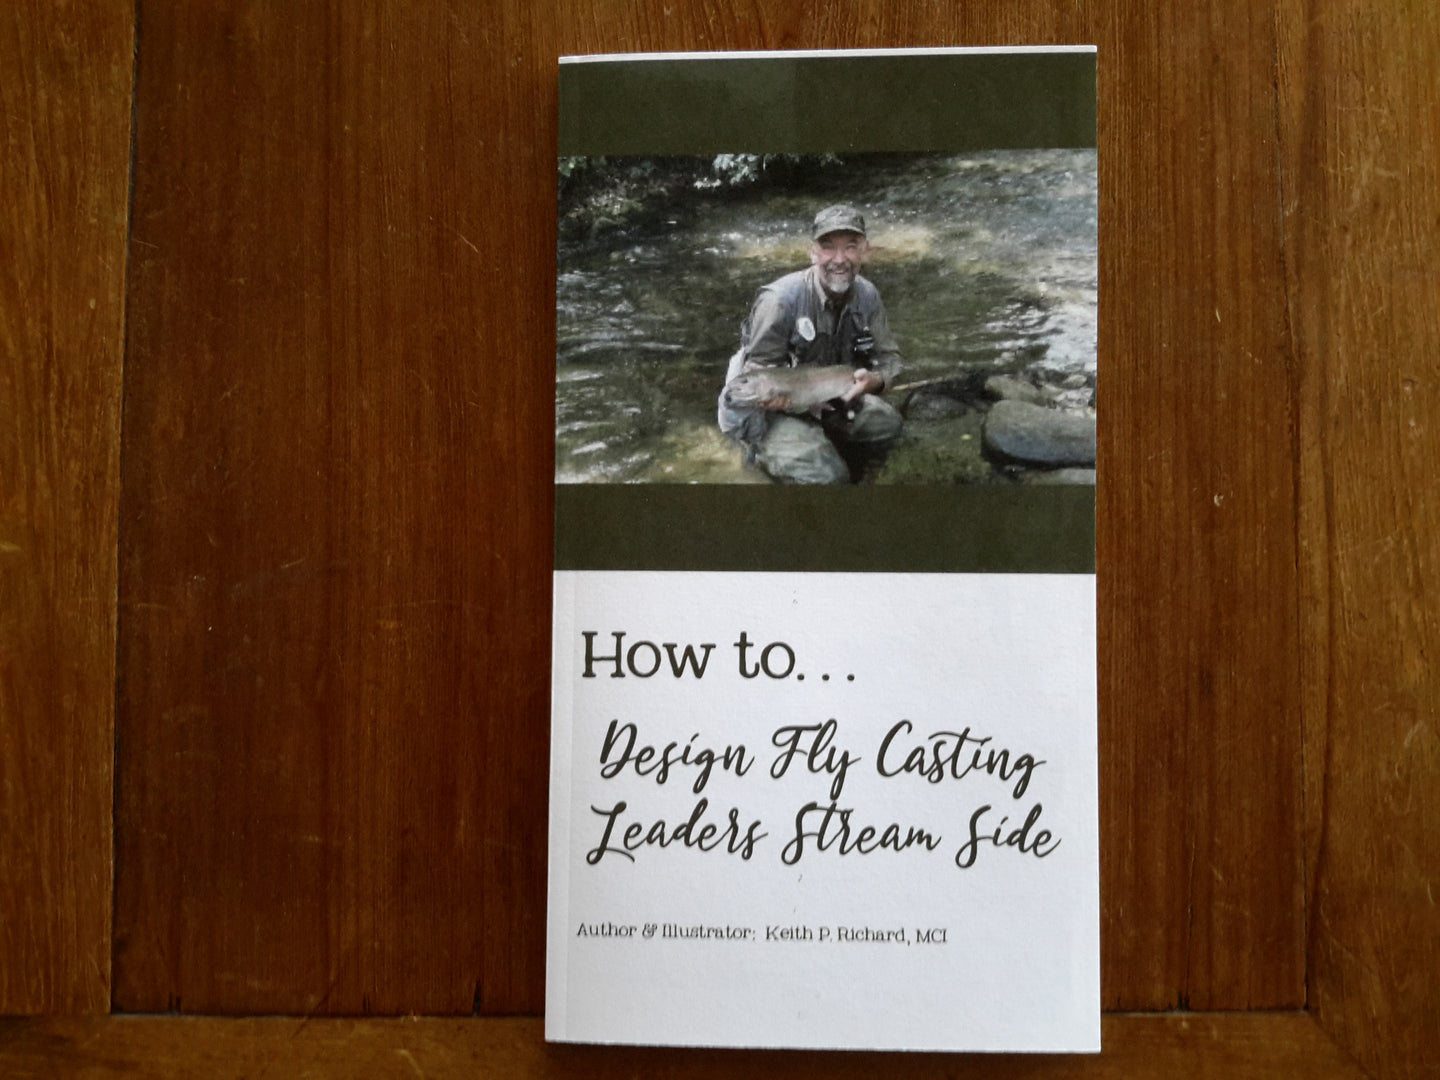 How to Design Fly Casting Leaders Streamside